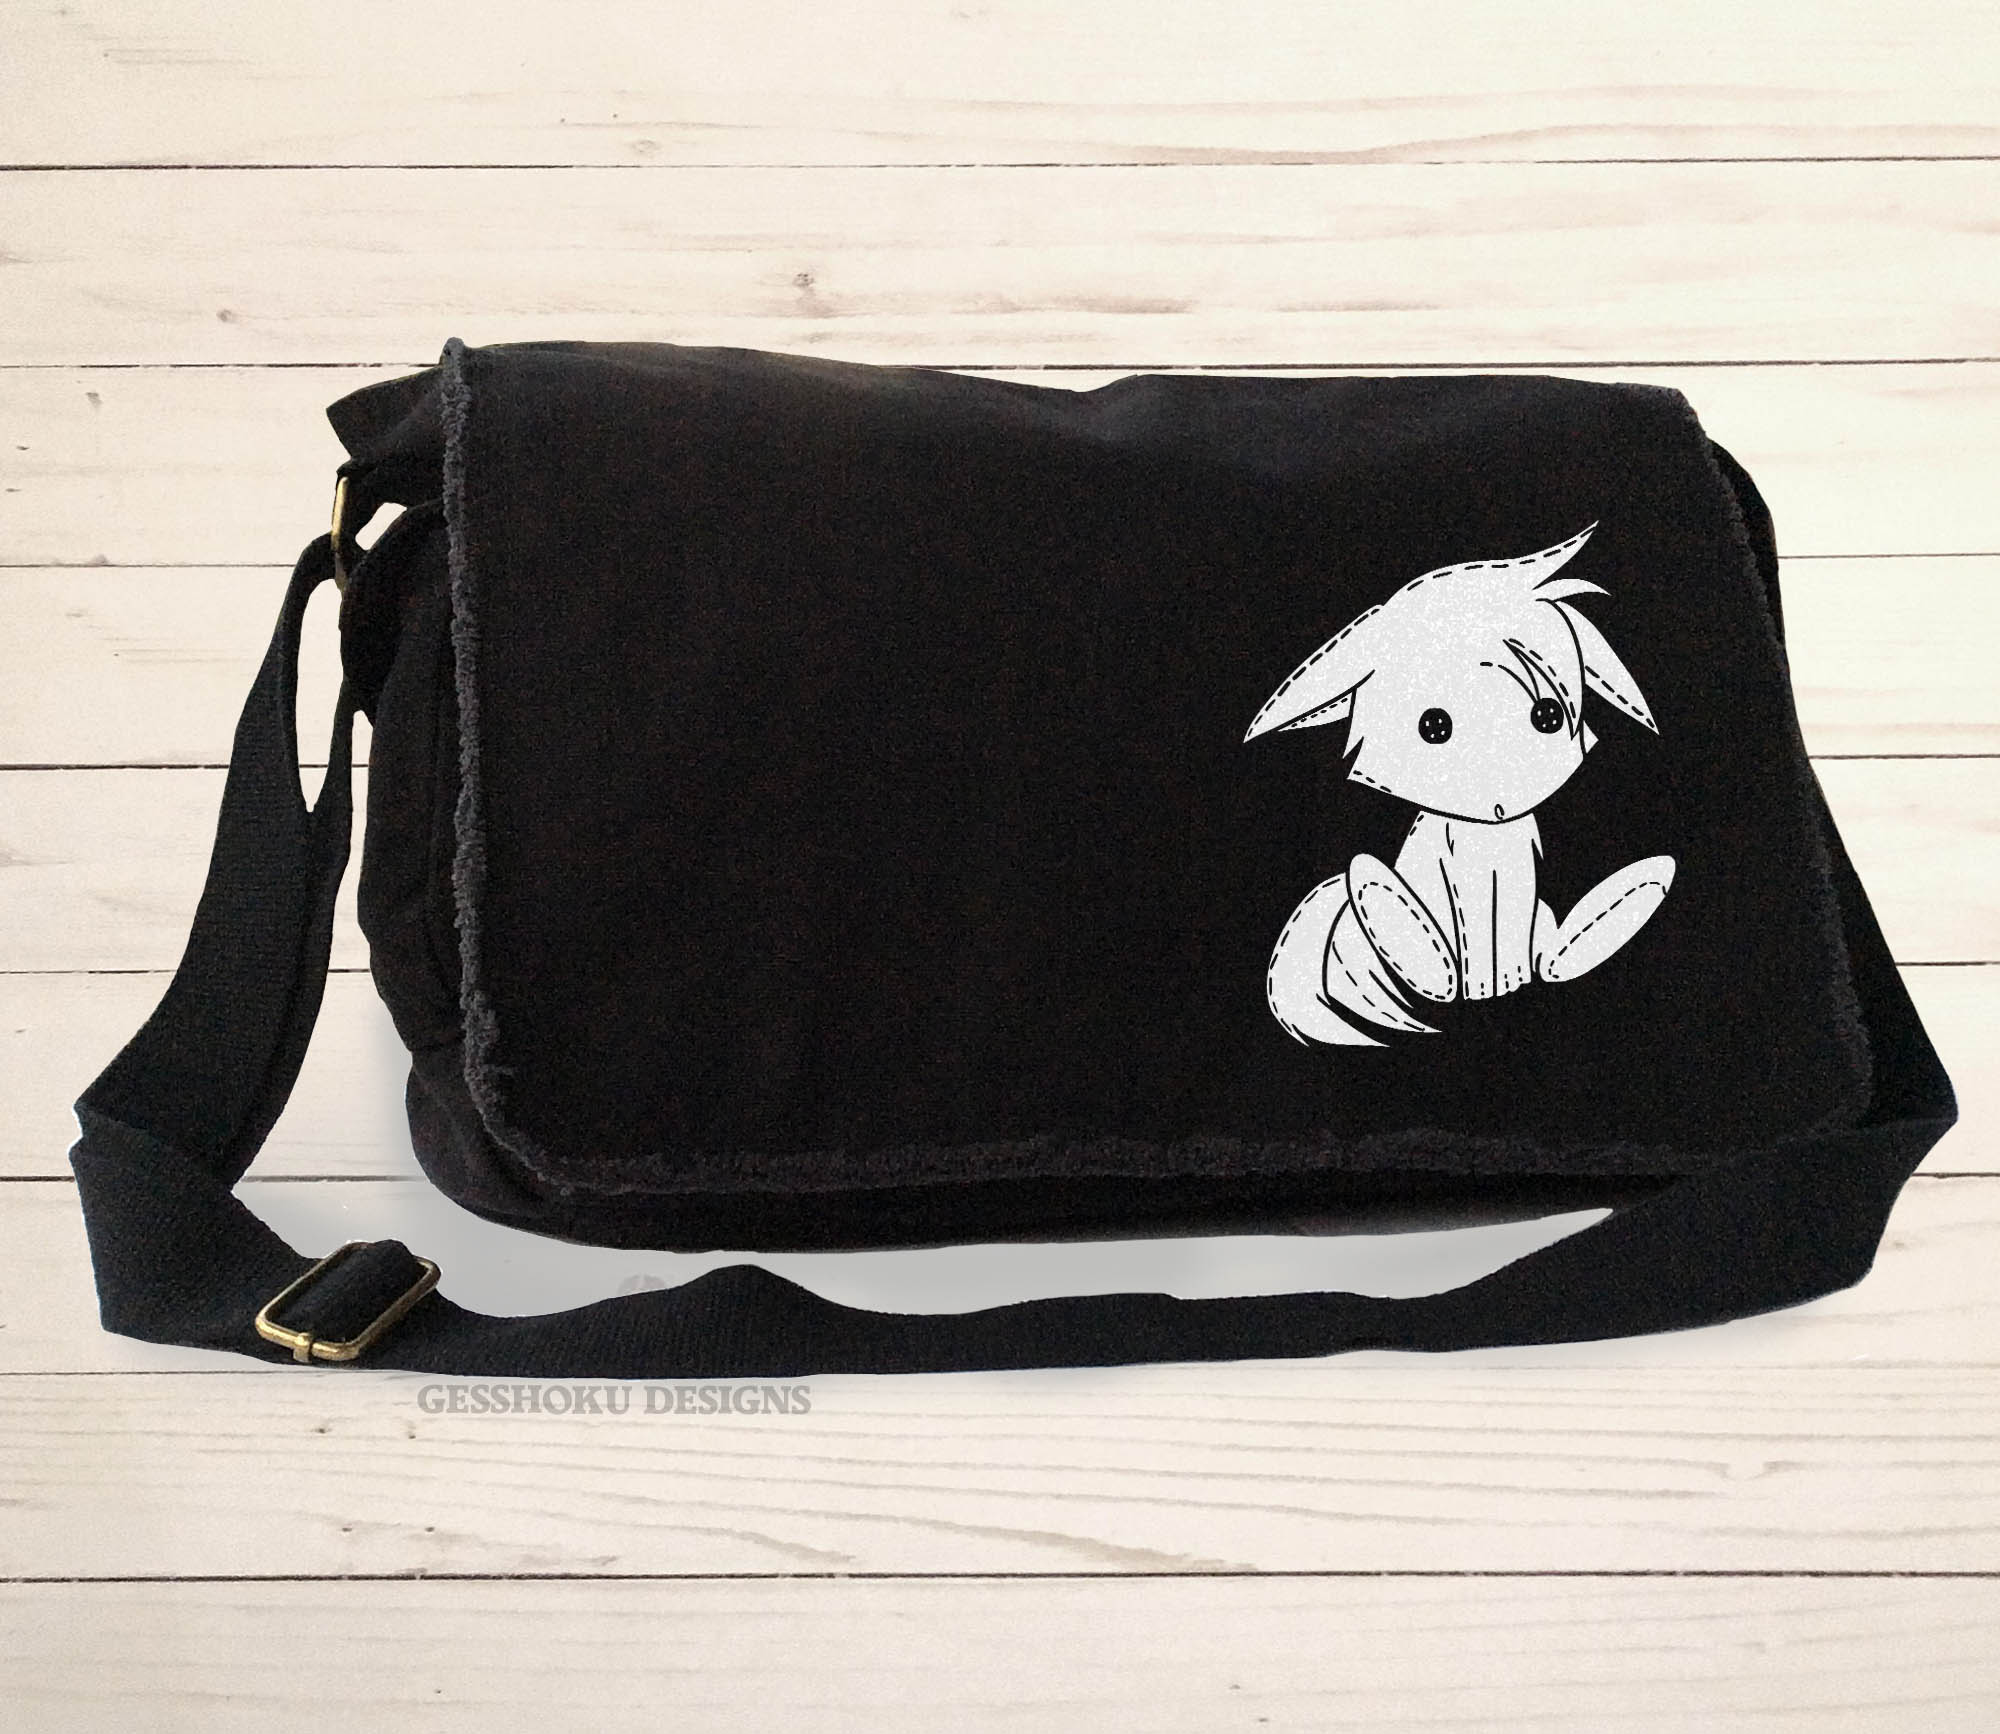 Plush Kitsune Messenger Bag - Black